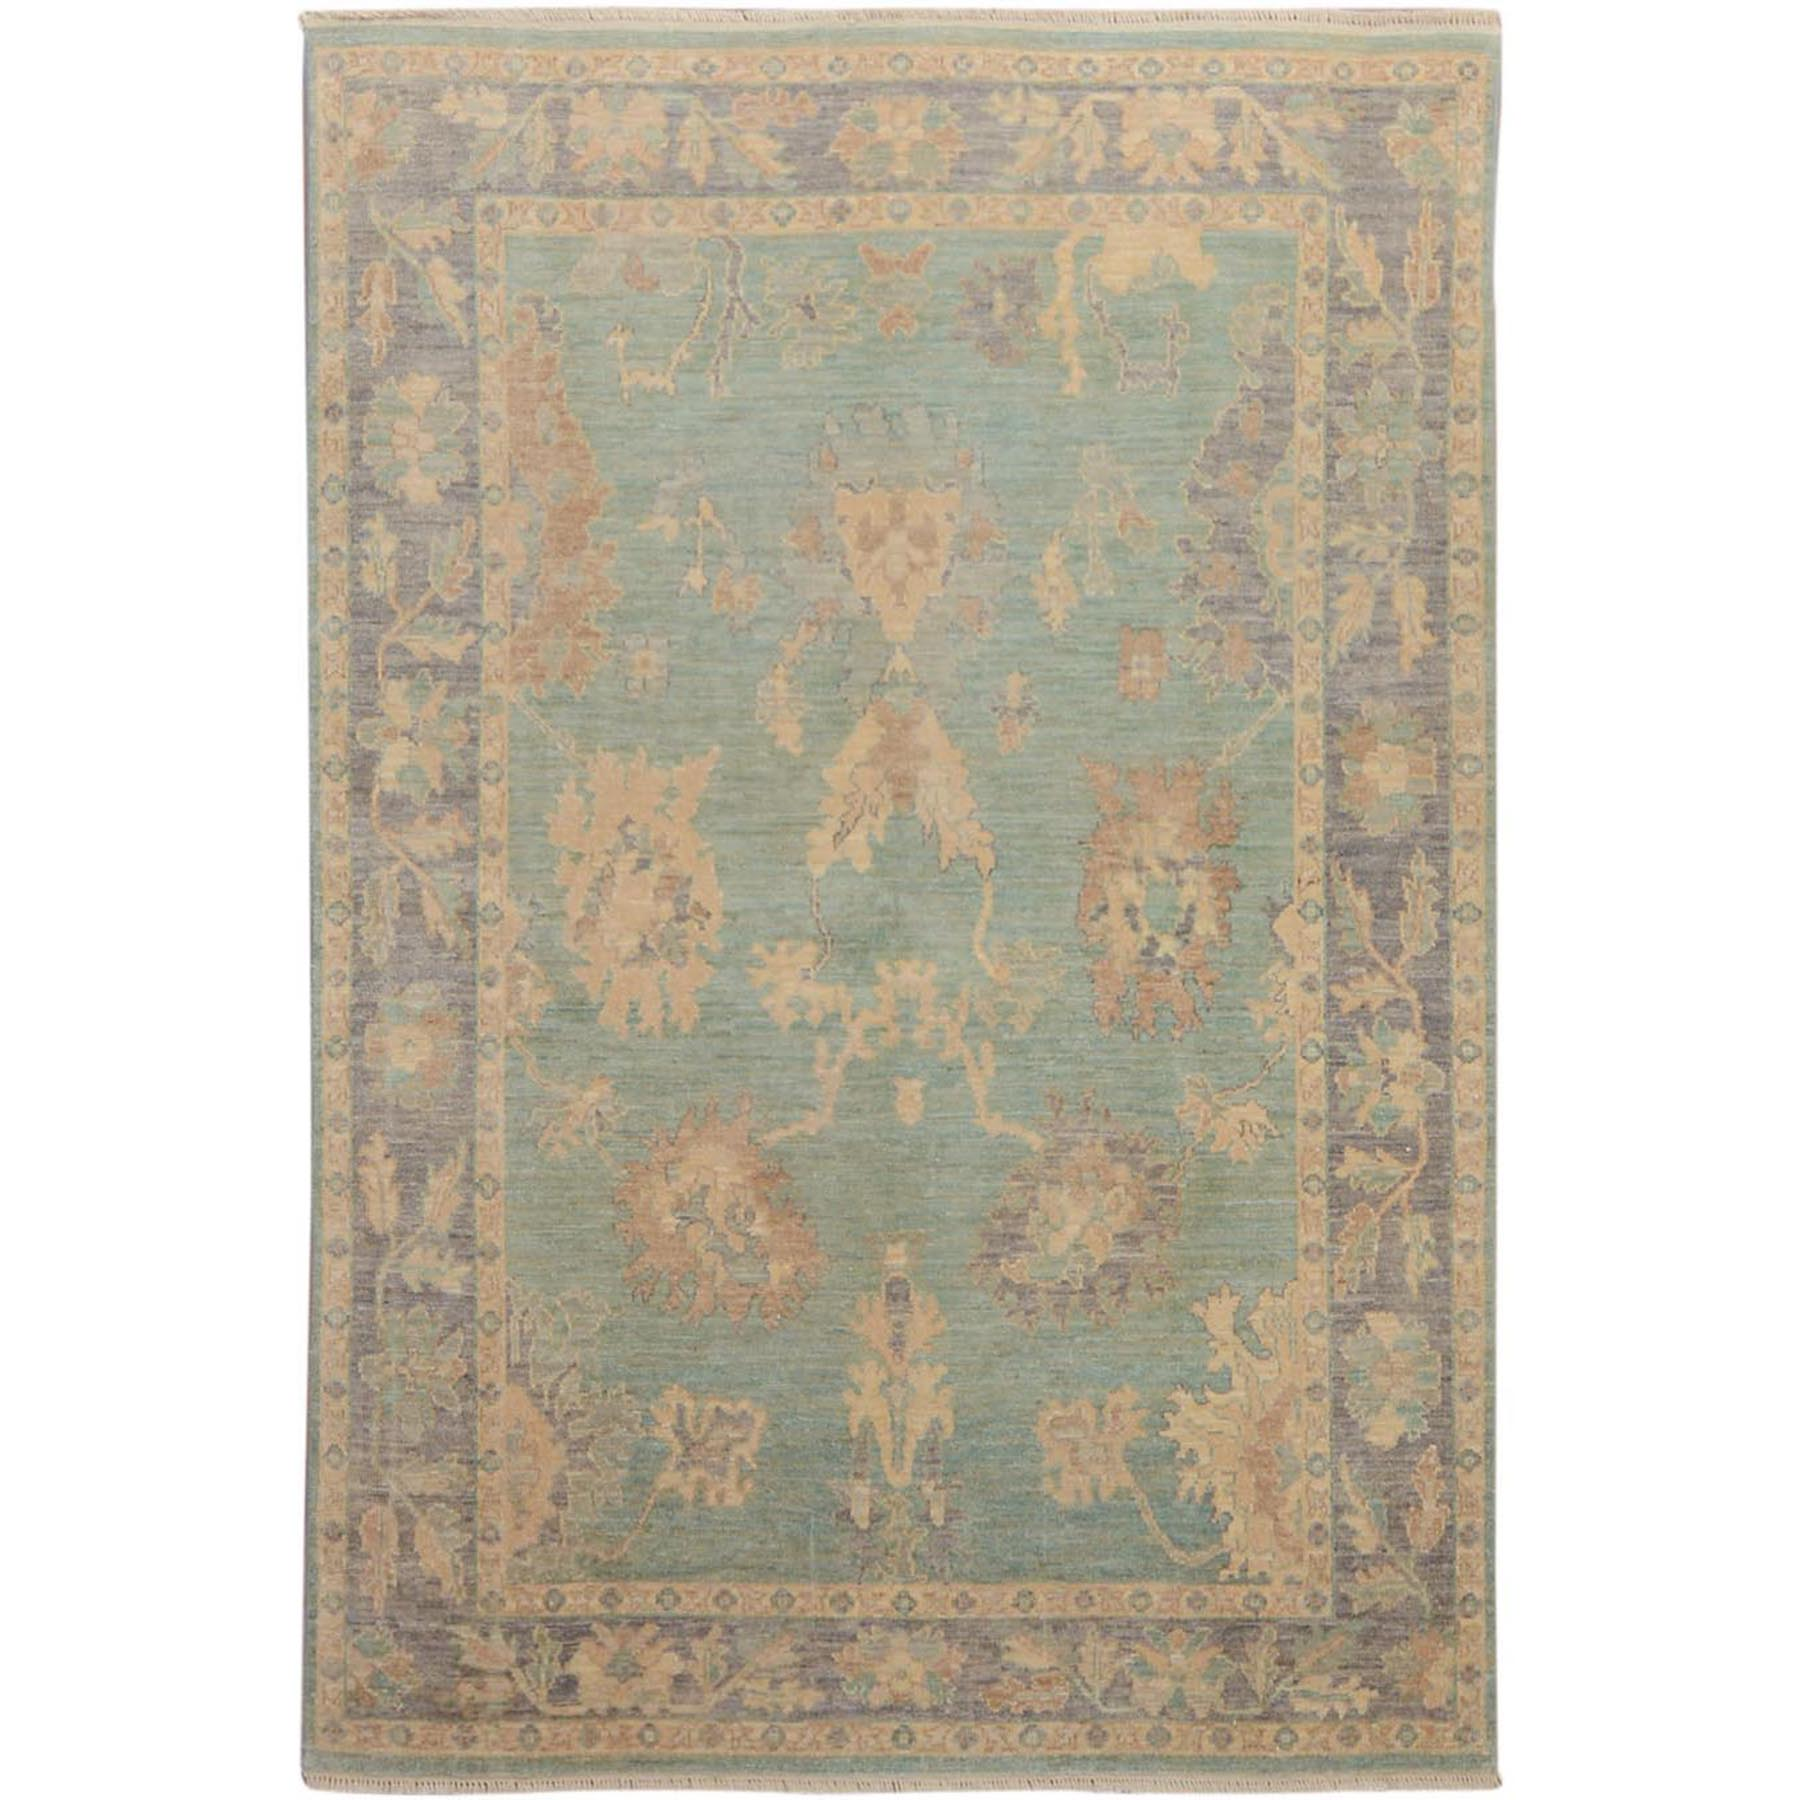 "6'1""x8'9"" Pastel Green Angora Oushak With Soft Silky wool Hand Woven Oriental Rug"